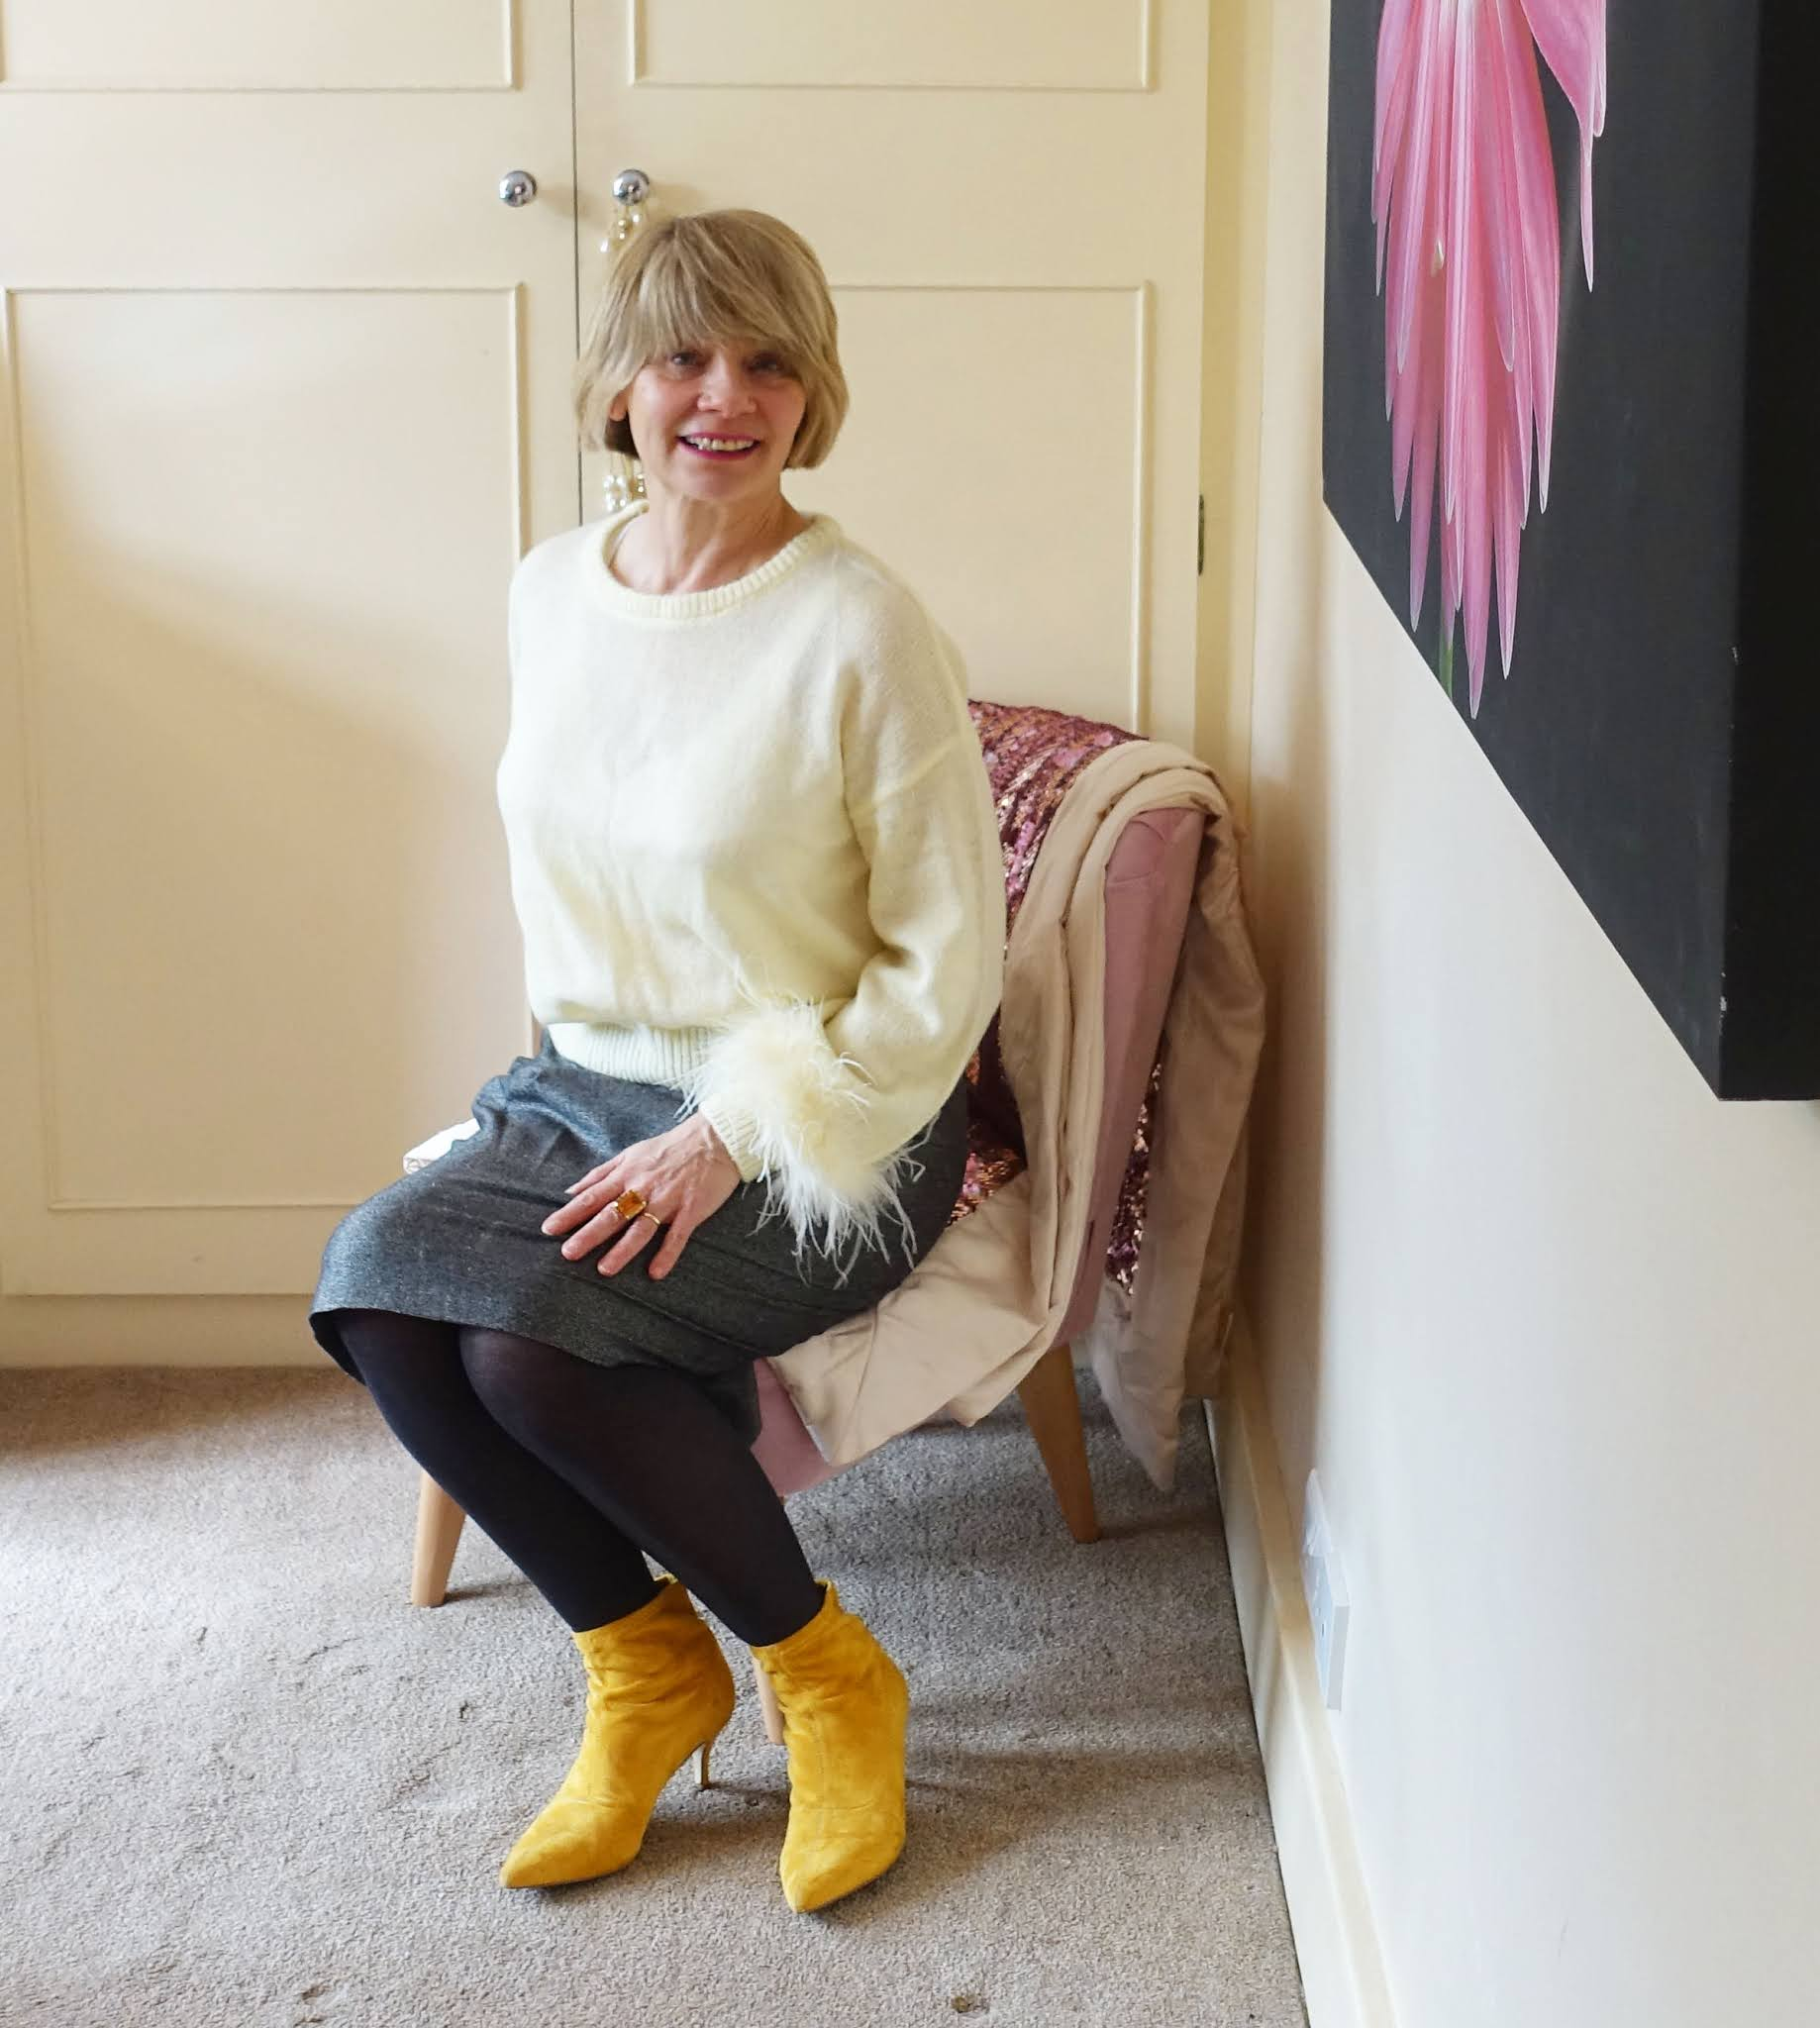 Blogger Gail Hanlon from Is This Mutton in her take on the Pantone Colors of the Year 2021 with a yellow maribou-trimmed jumper and grey skirt